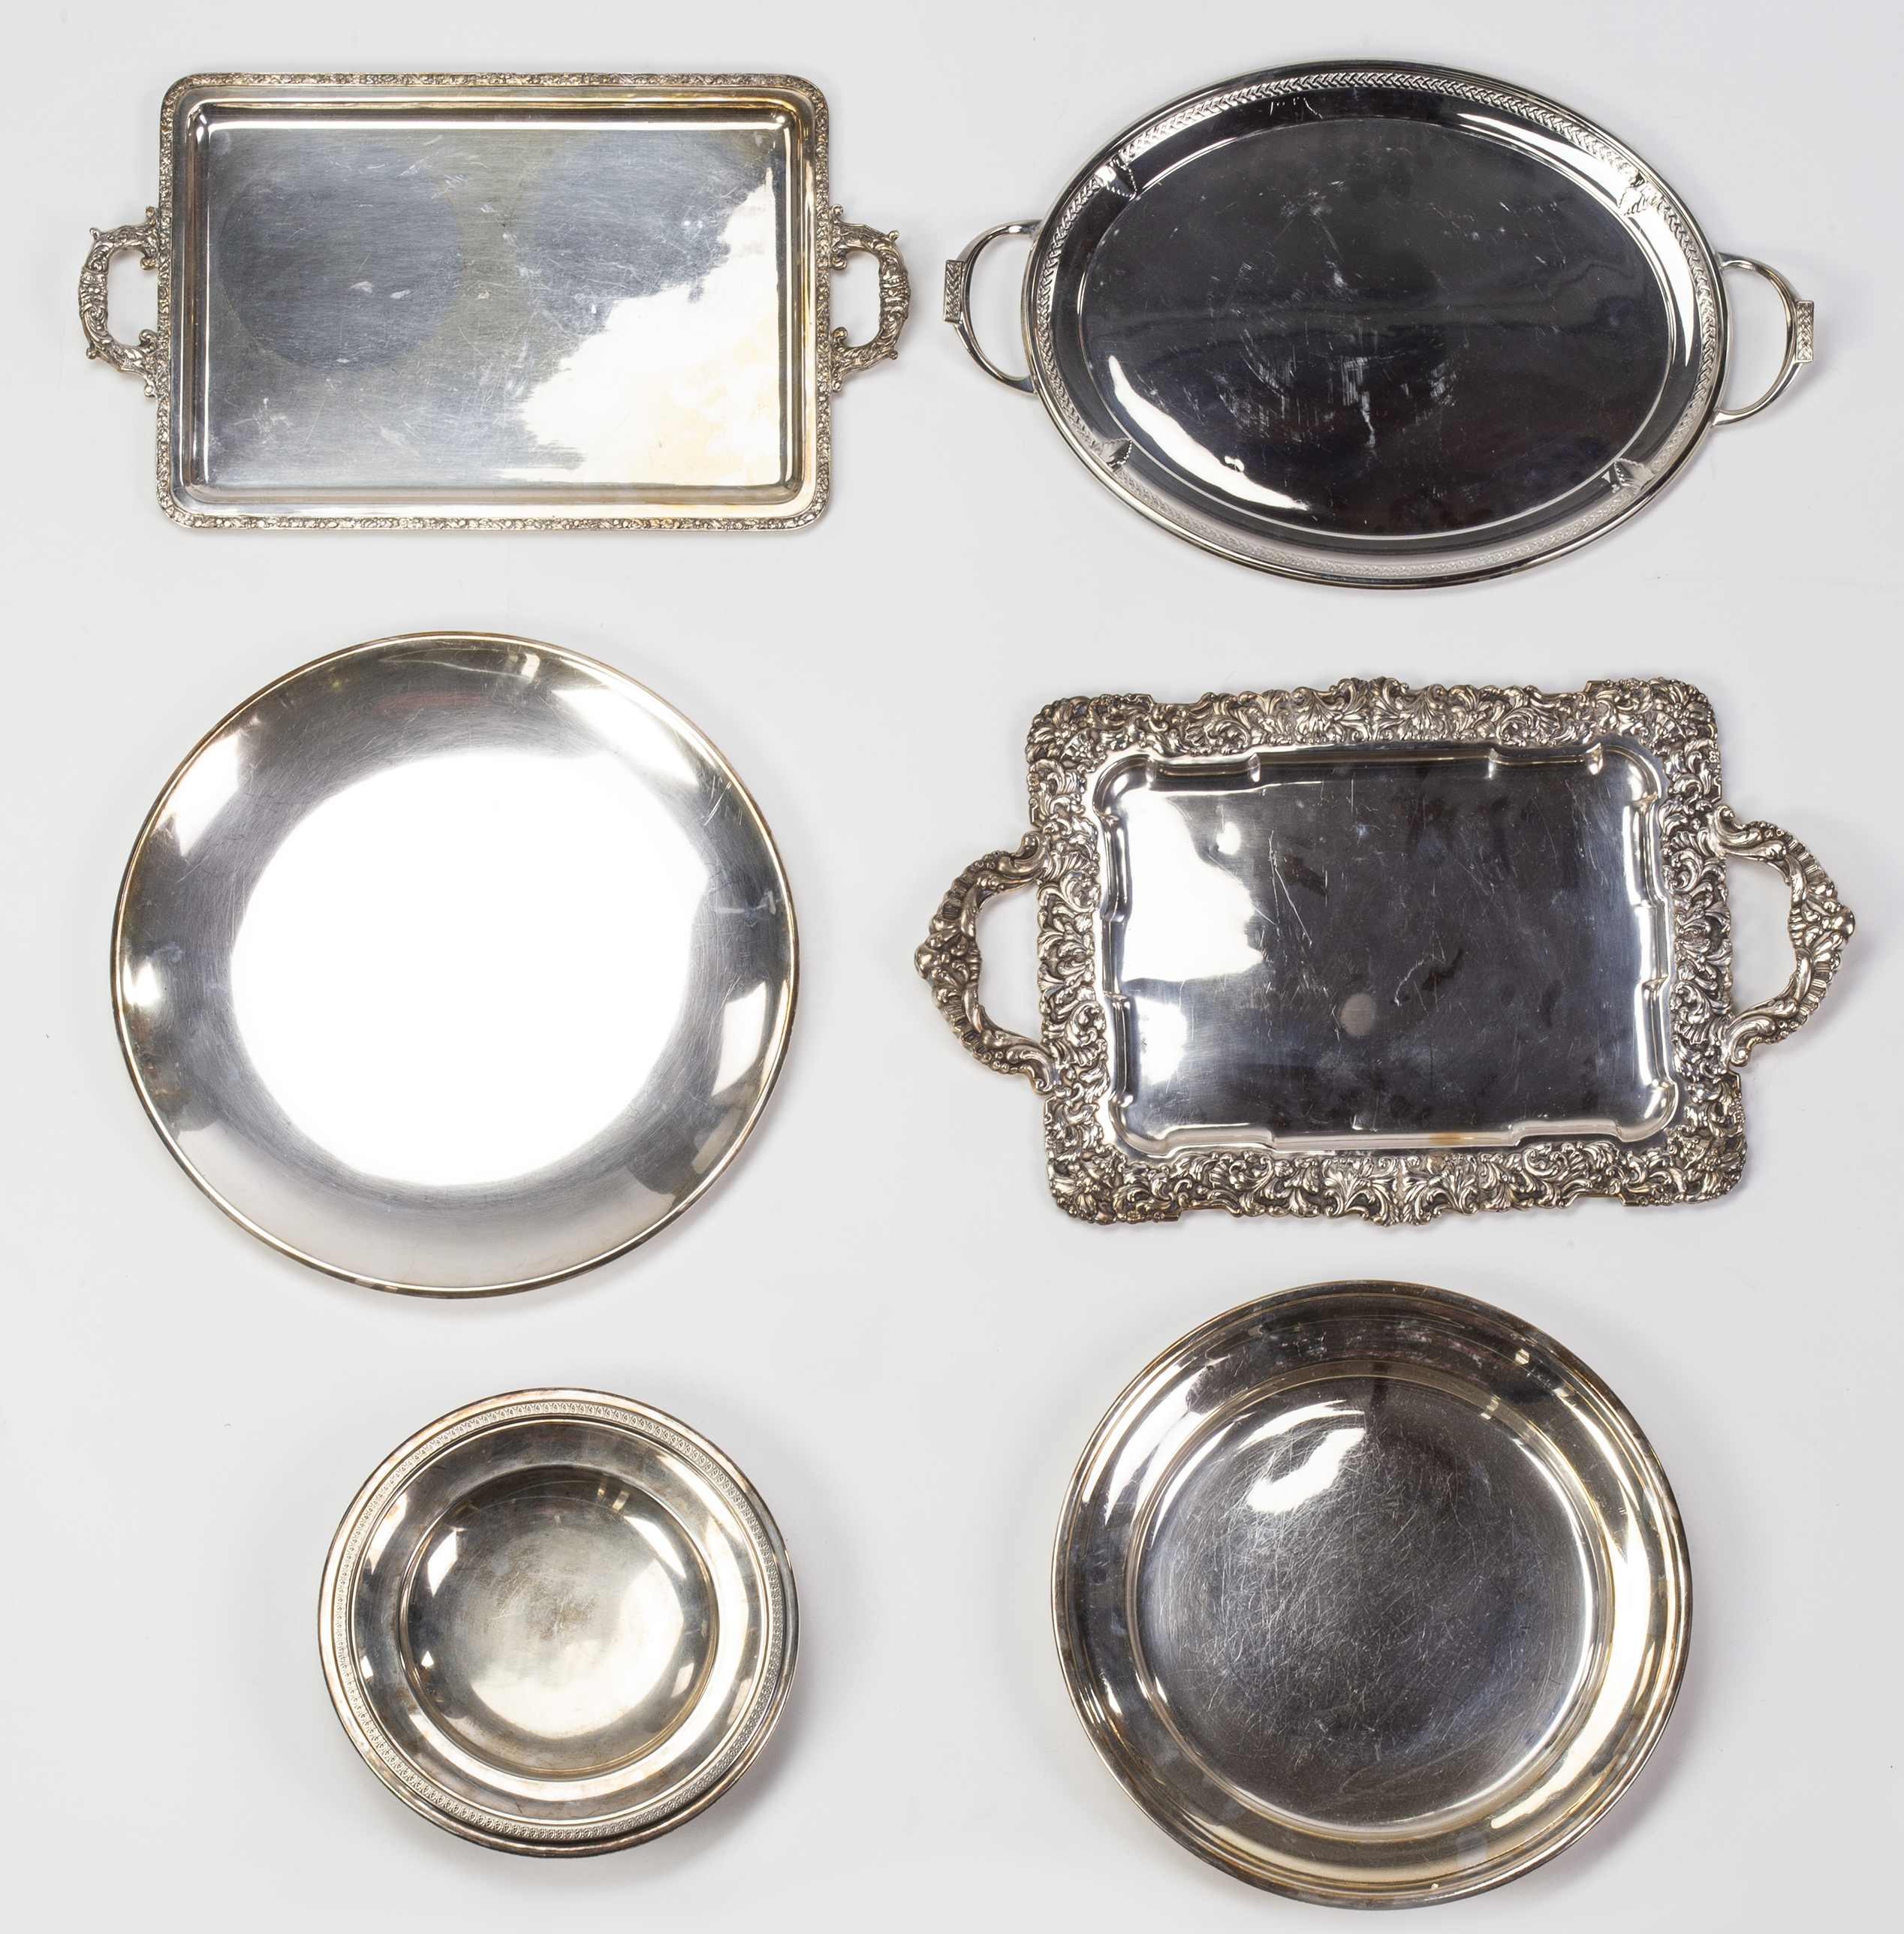 Five trays and a platter in silver-plated metal, second half